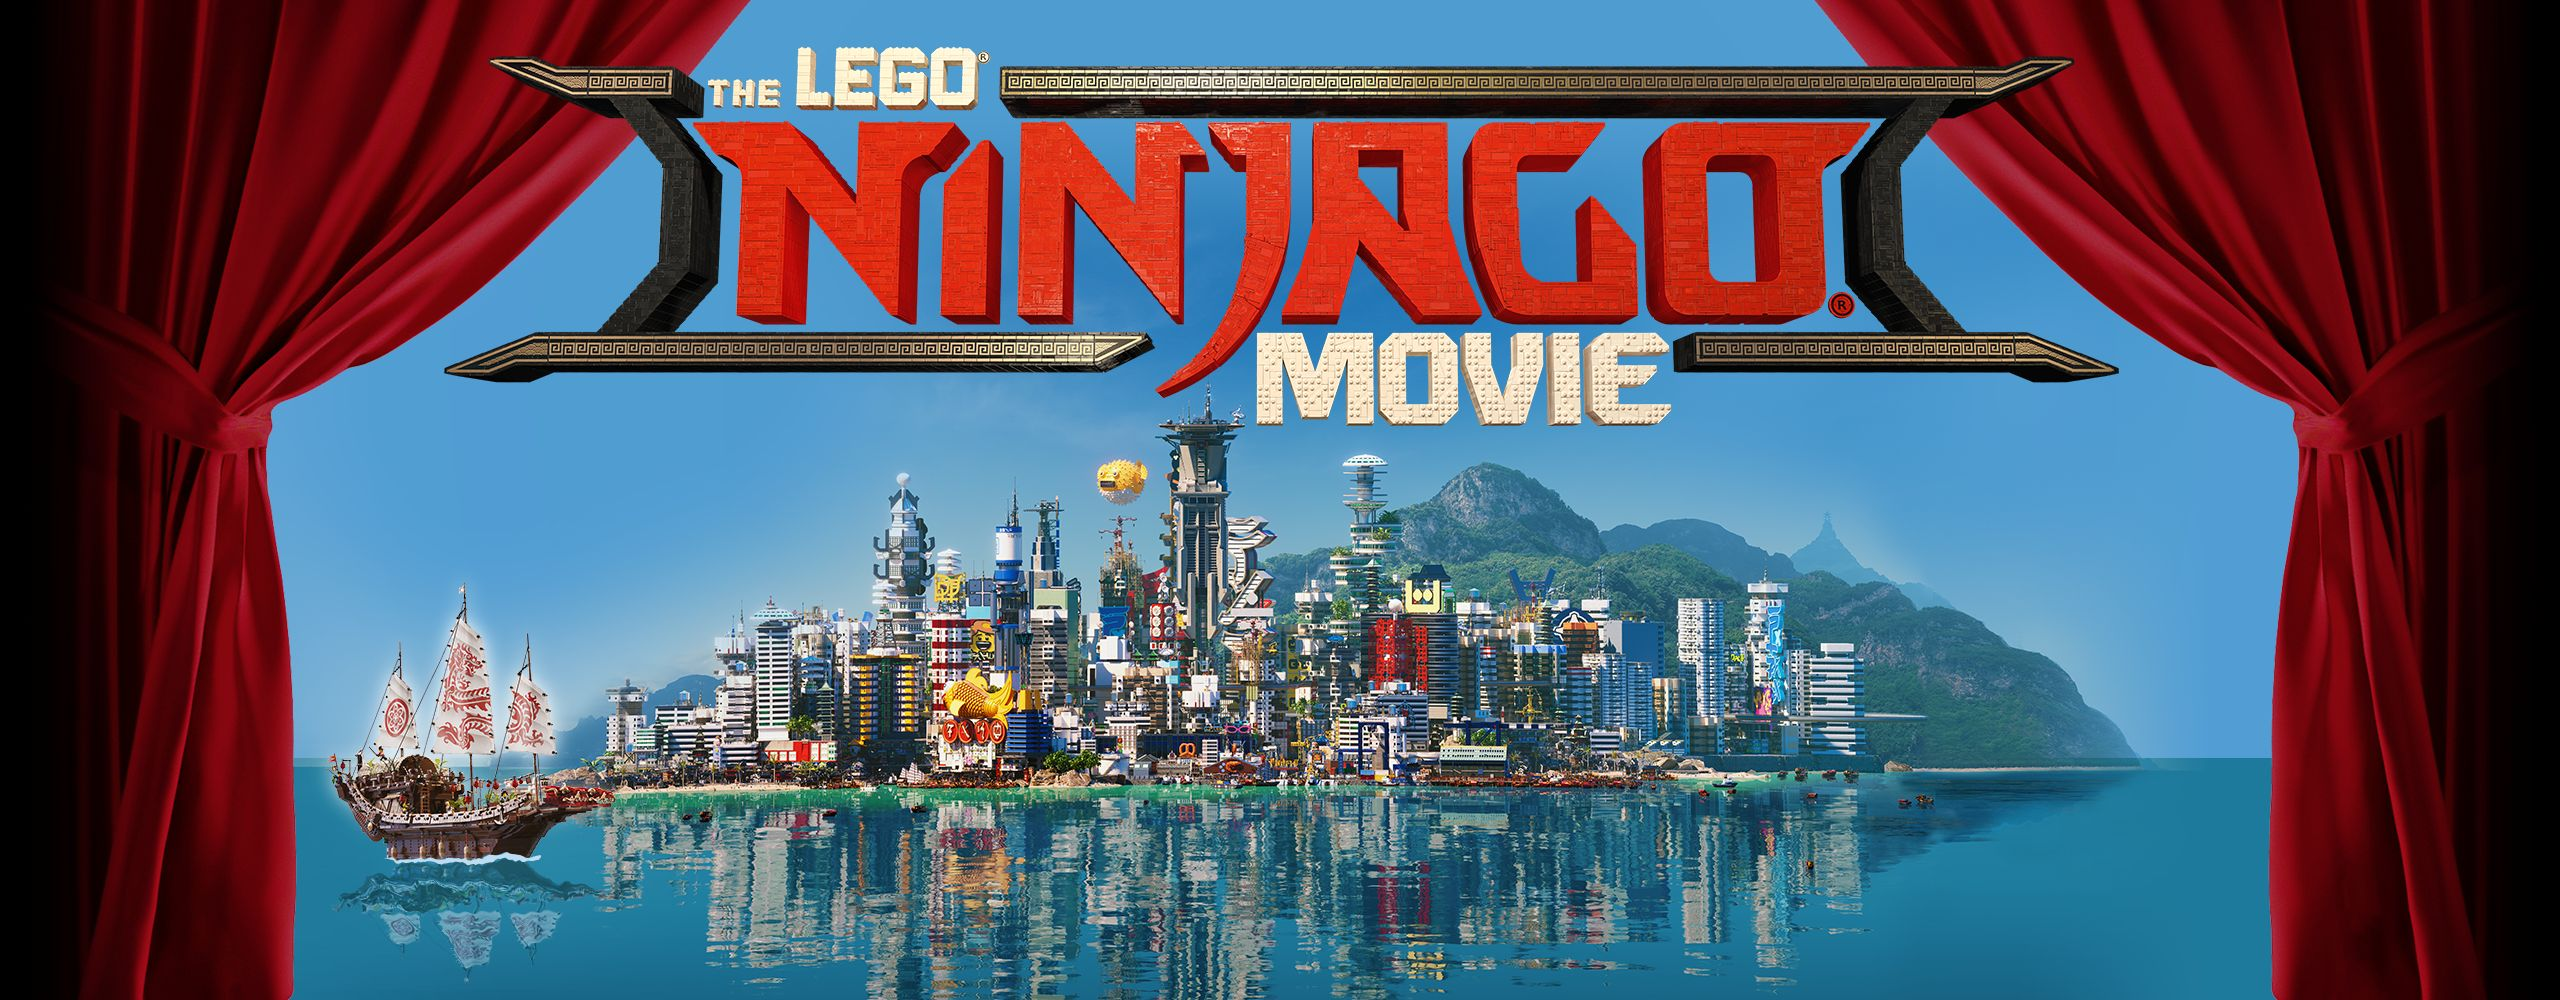 lego movie city background - photo #25